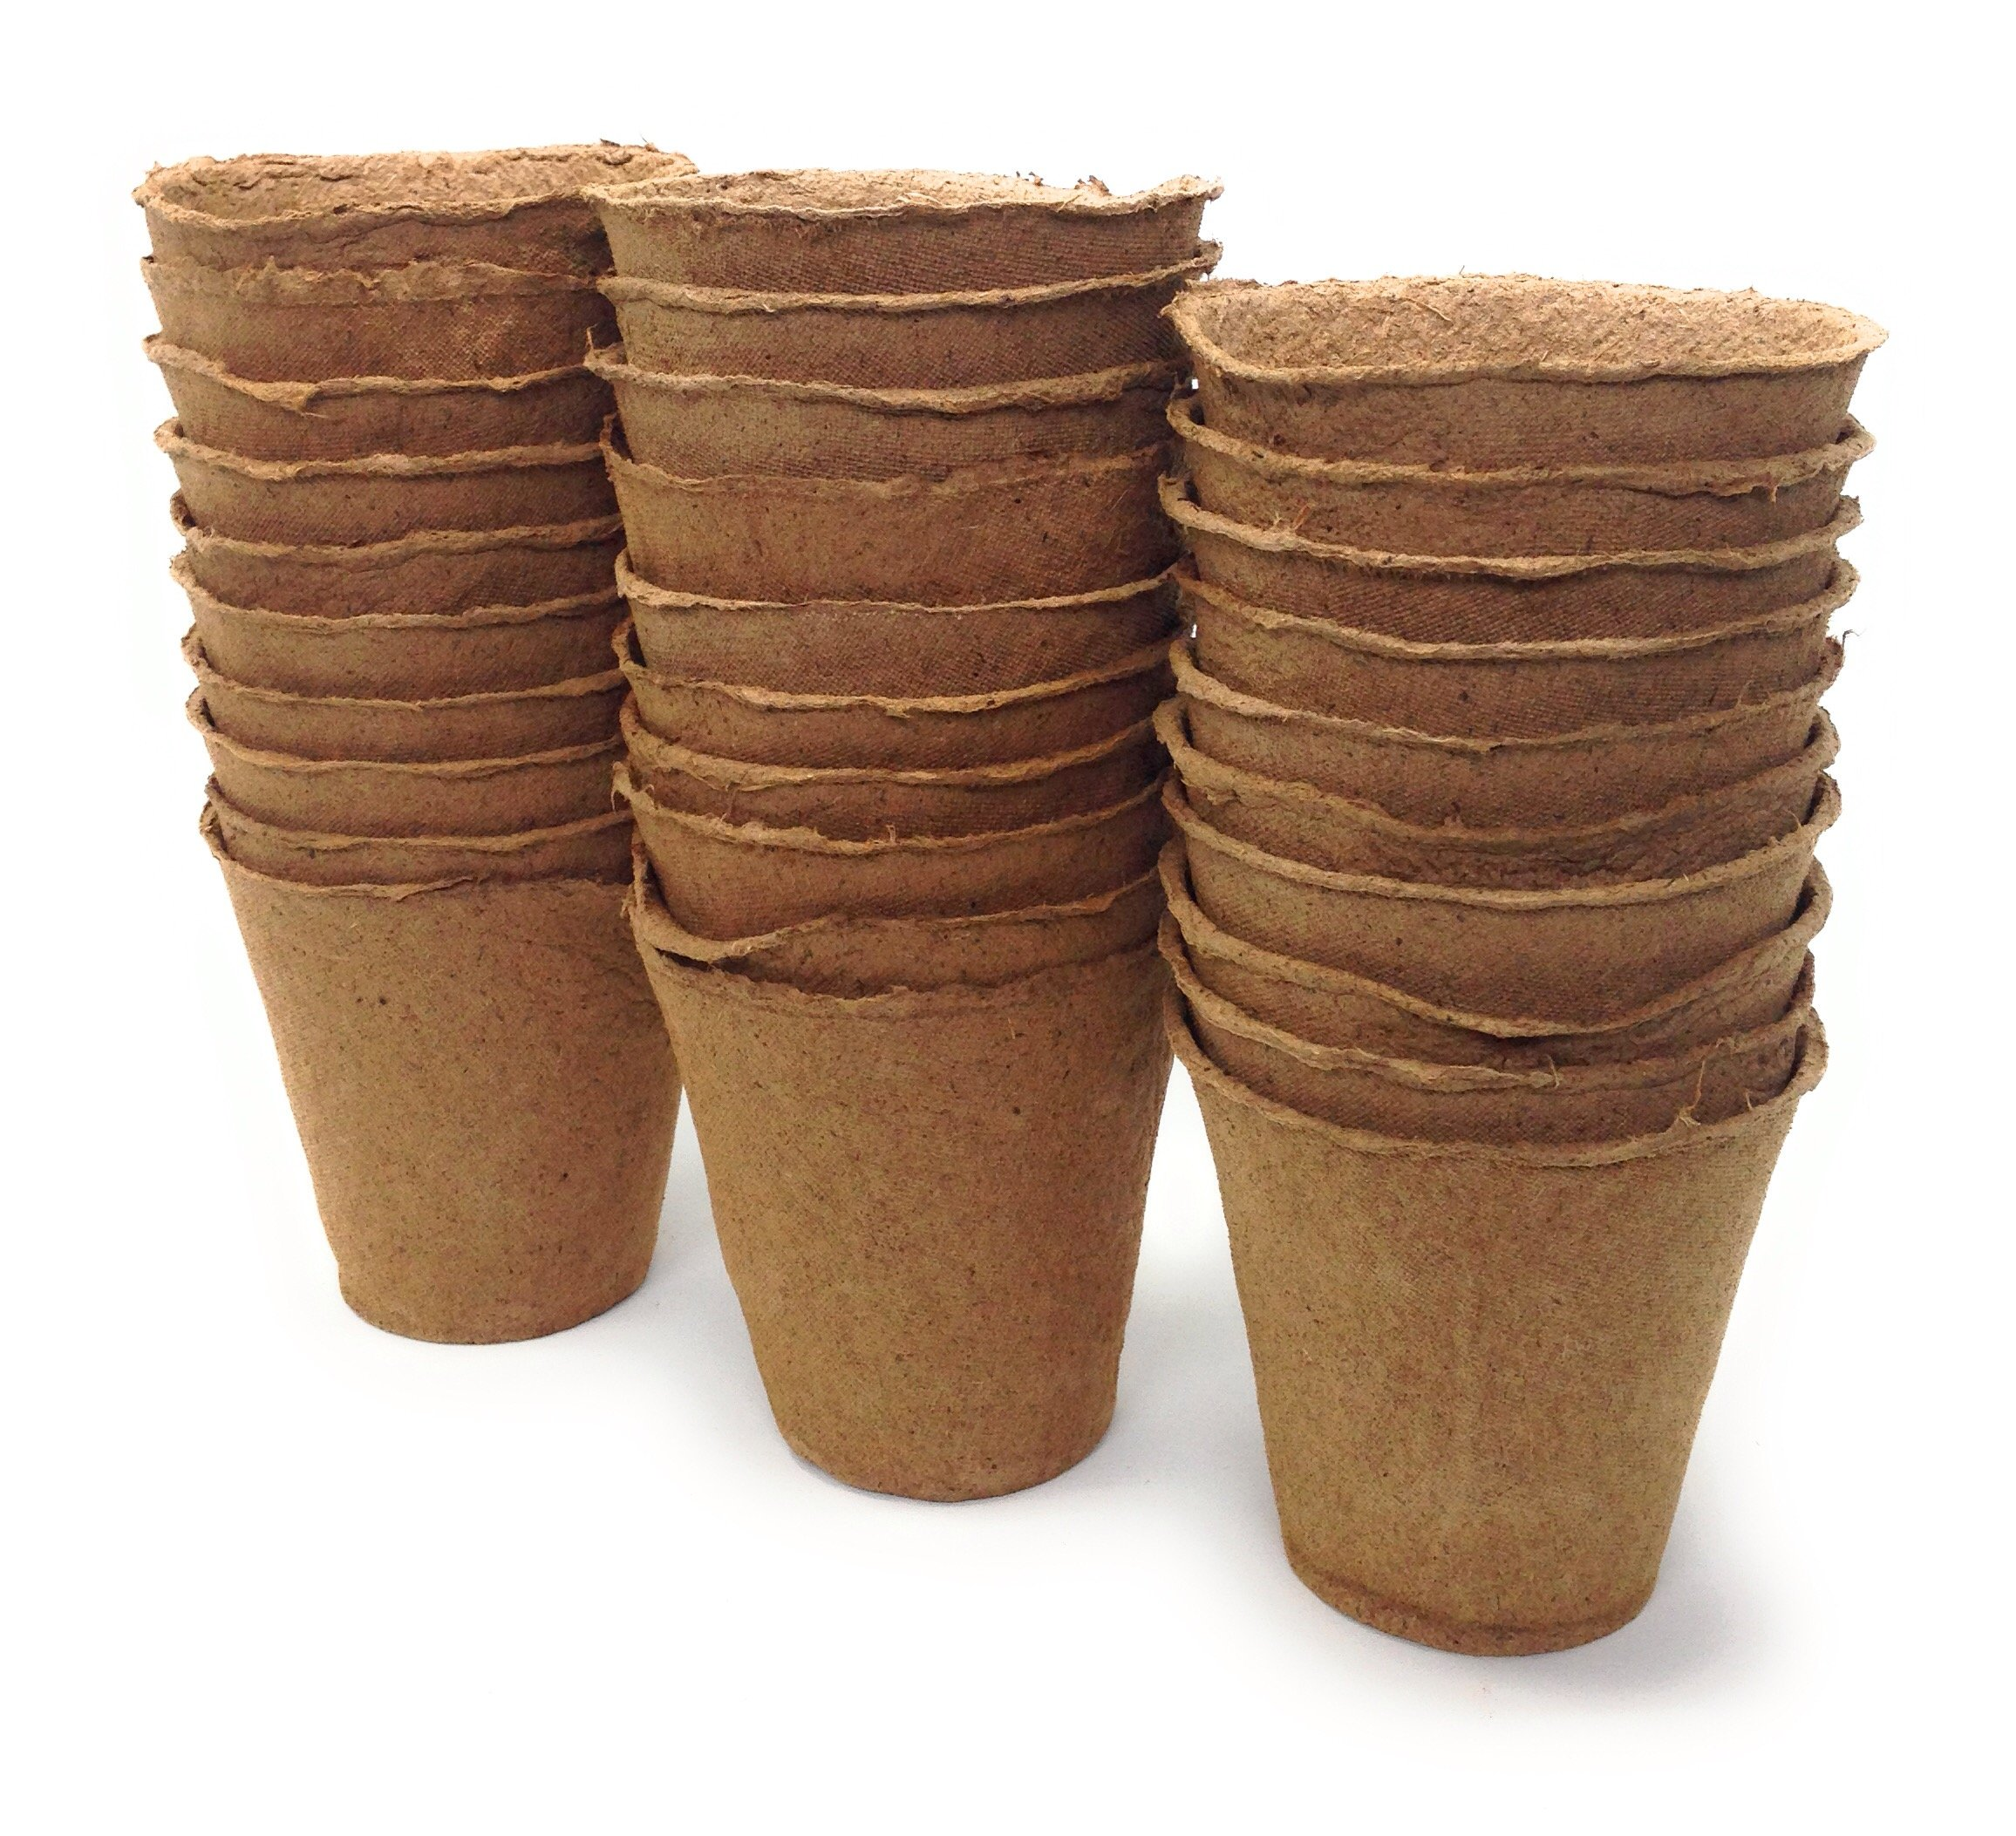 Brillante Plant Starter Peat Pots - 30 Pack of 4 Inch Pots for Your Garden, Greenhouse or Nursery by Brillante